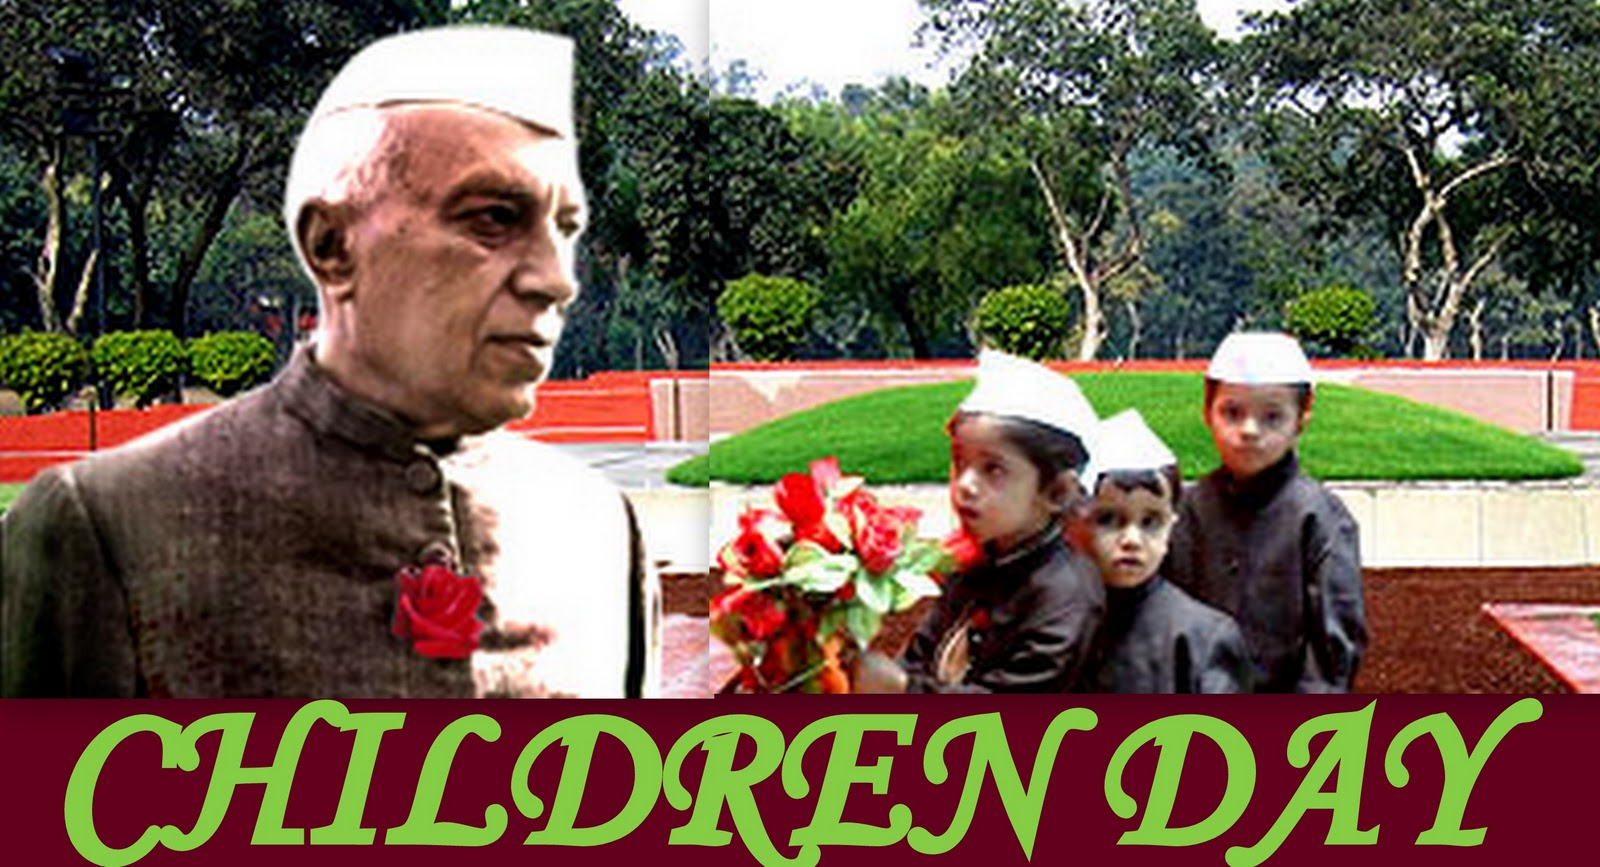 2018 Jawaharlal Nehru Jayanti Day - Birth Anniversary of Pt. Nehru